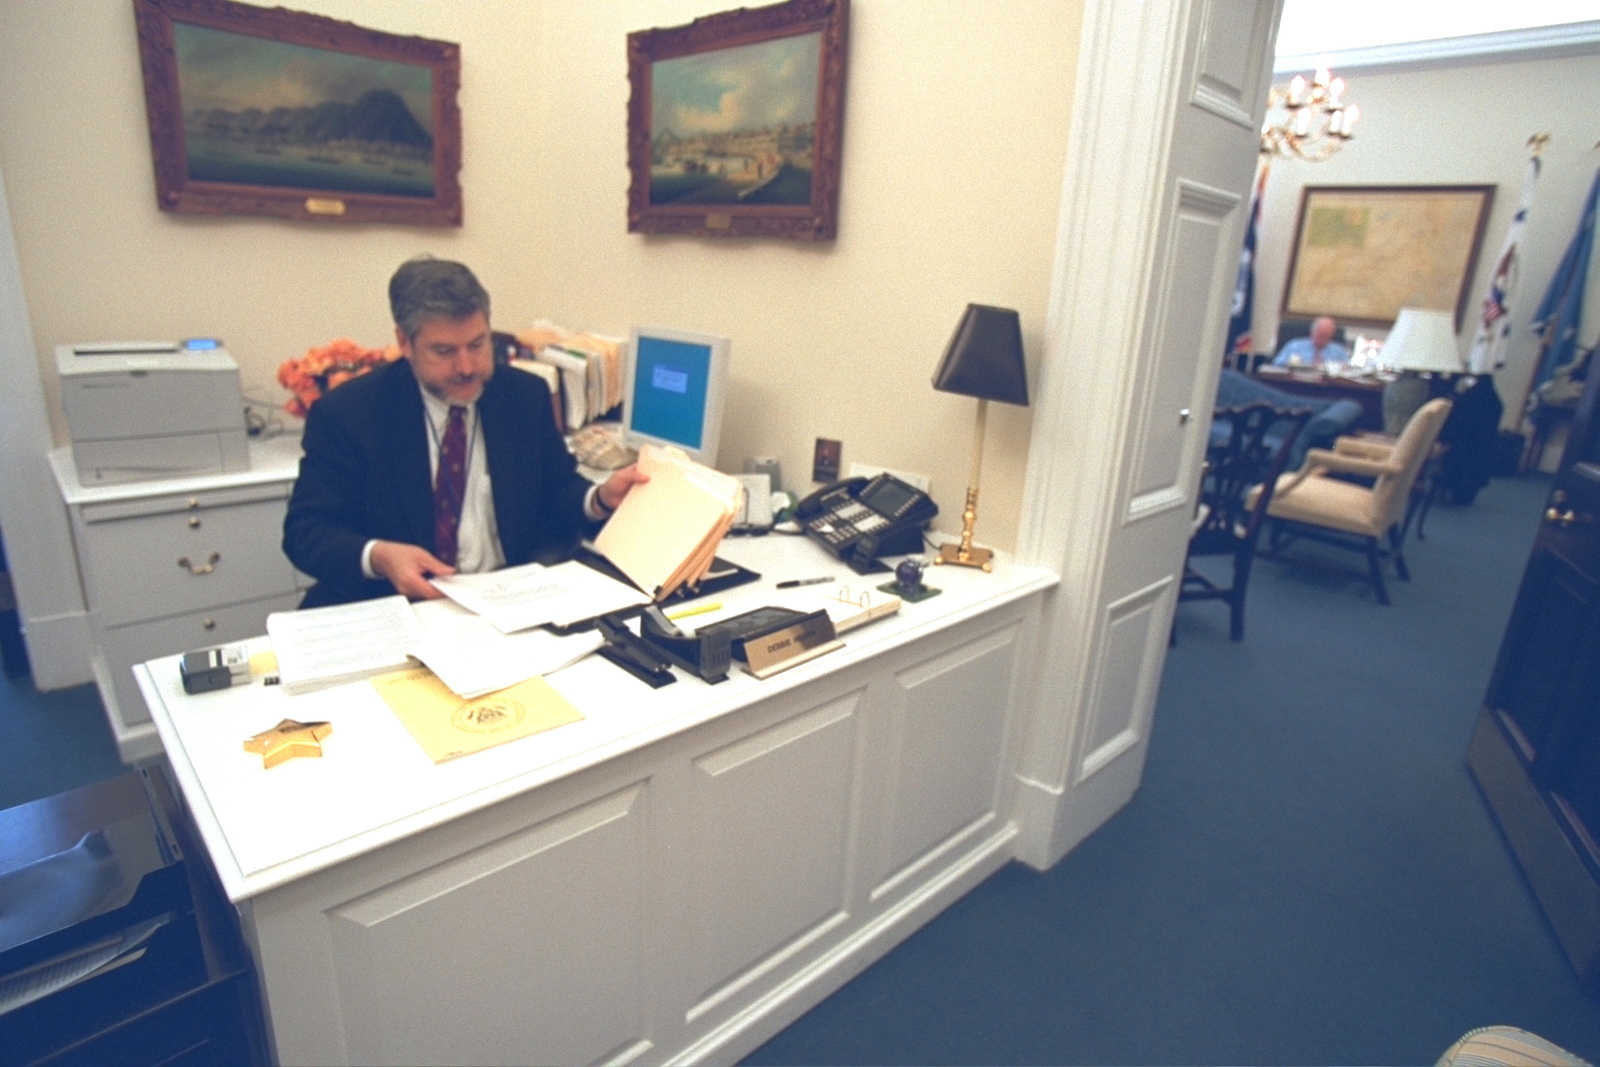 David Addington Working in the Outer Office of Vice President Cheney